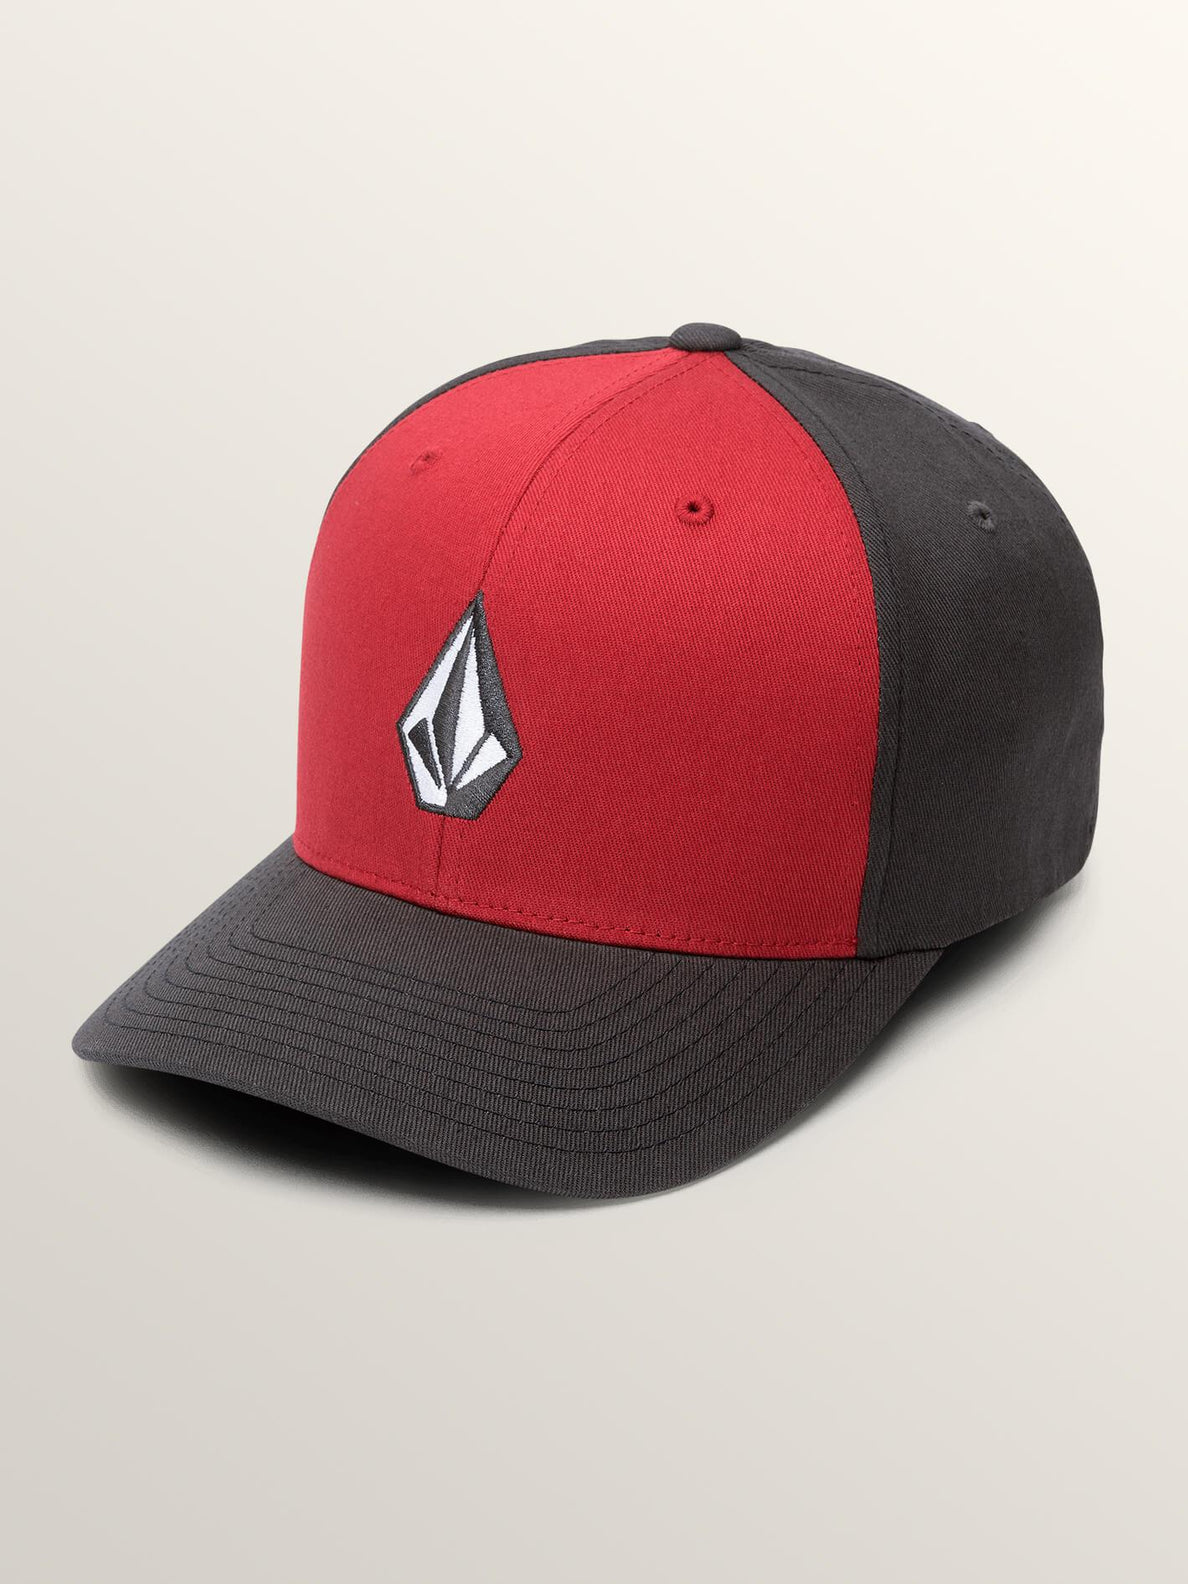 Full Stone Xfit Hat In Engine Red, Front View